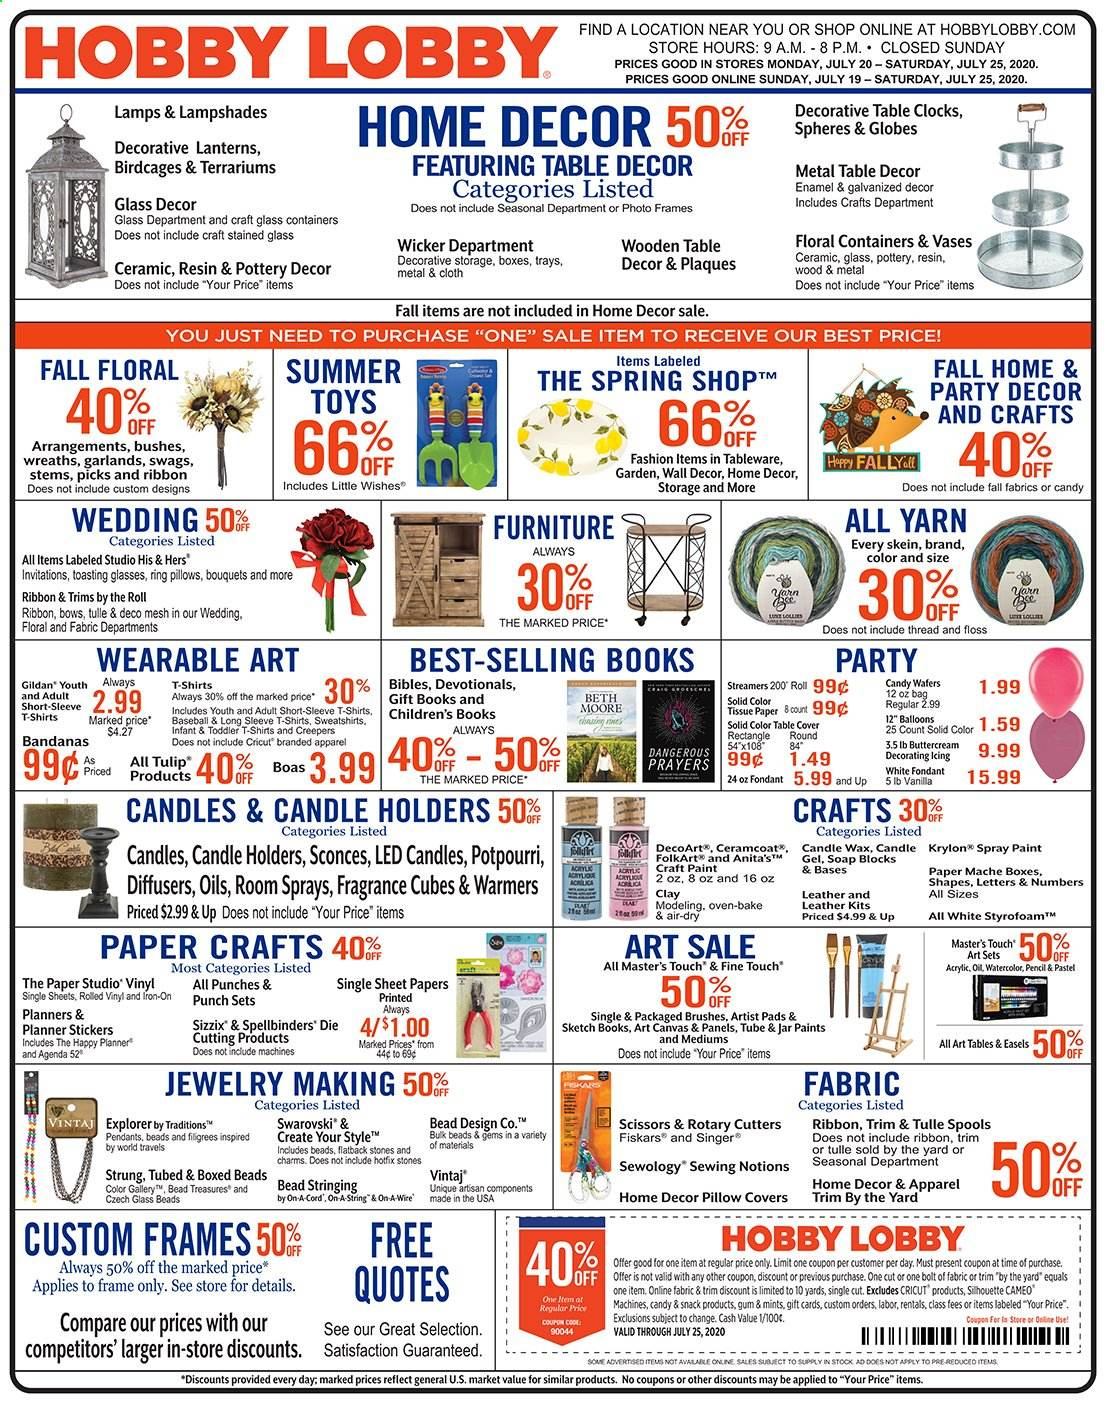 Hobby Lobby Flyer - 07.19.2020 - 07.25.2020 - Sales products - box, candle, diffuser, Fiskars, fragrance, Furniture, lamp, sheet, shirt, solid, spray paint, sticker, swarovski, sweatshirt, table, tableware, wafers, wall decor, iron, jar, pillow, pillow cover, pendant, oven, toys, candy, snack, gum, punch, scissors, vinyl, oil, ribbon, glasses, paint. Page 1.